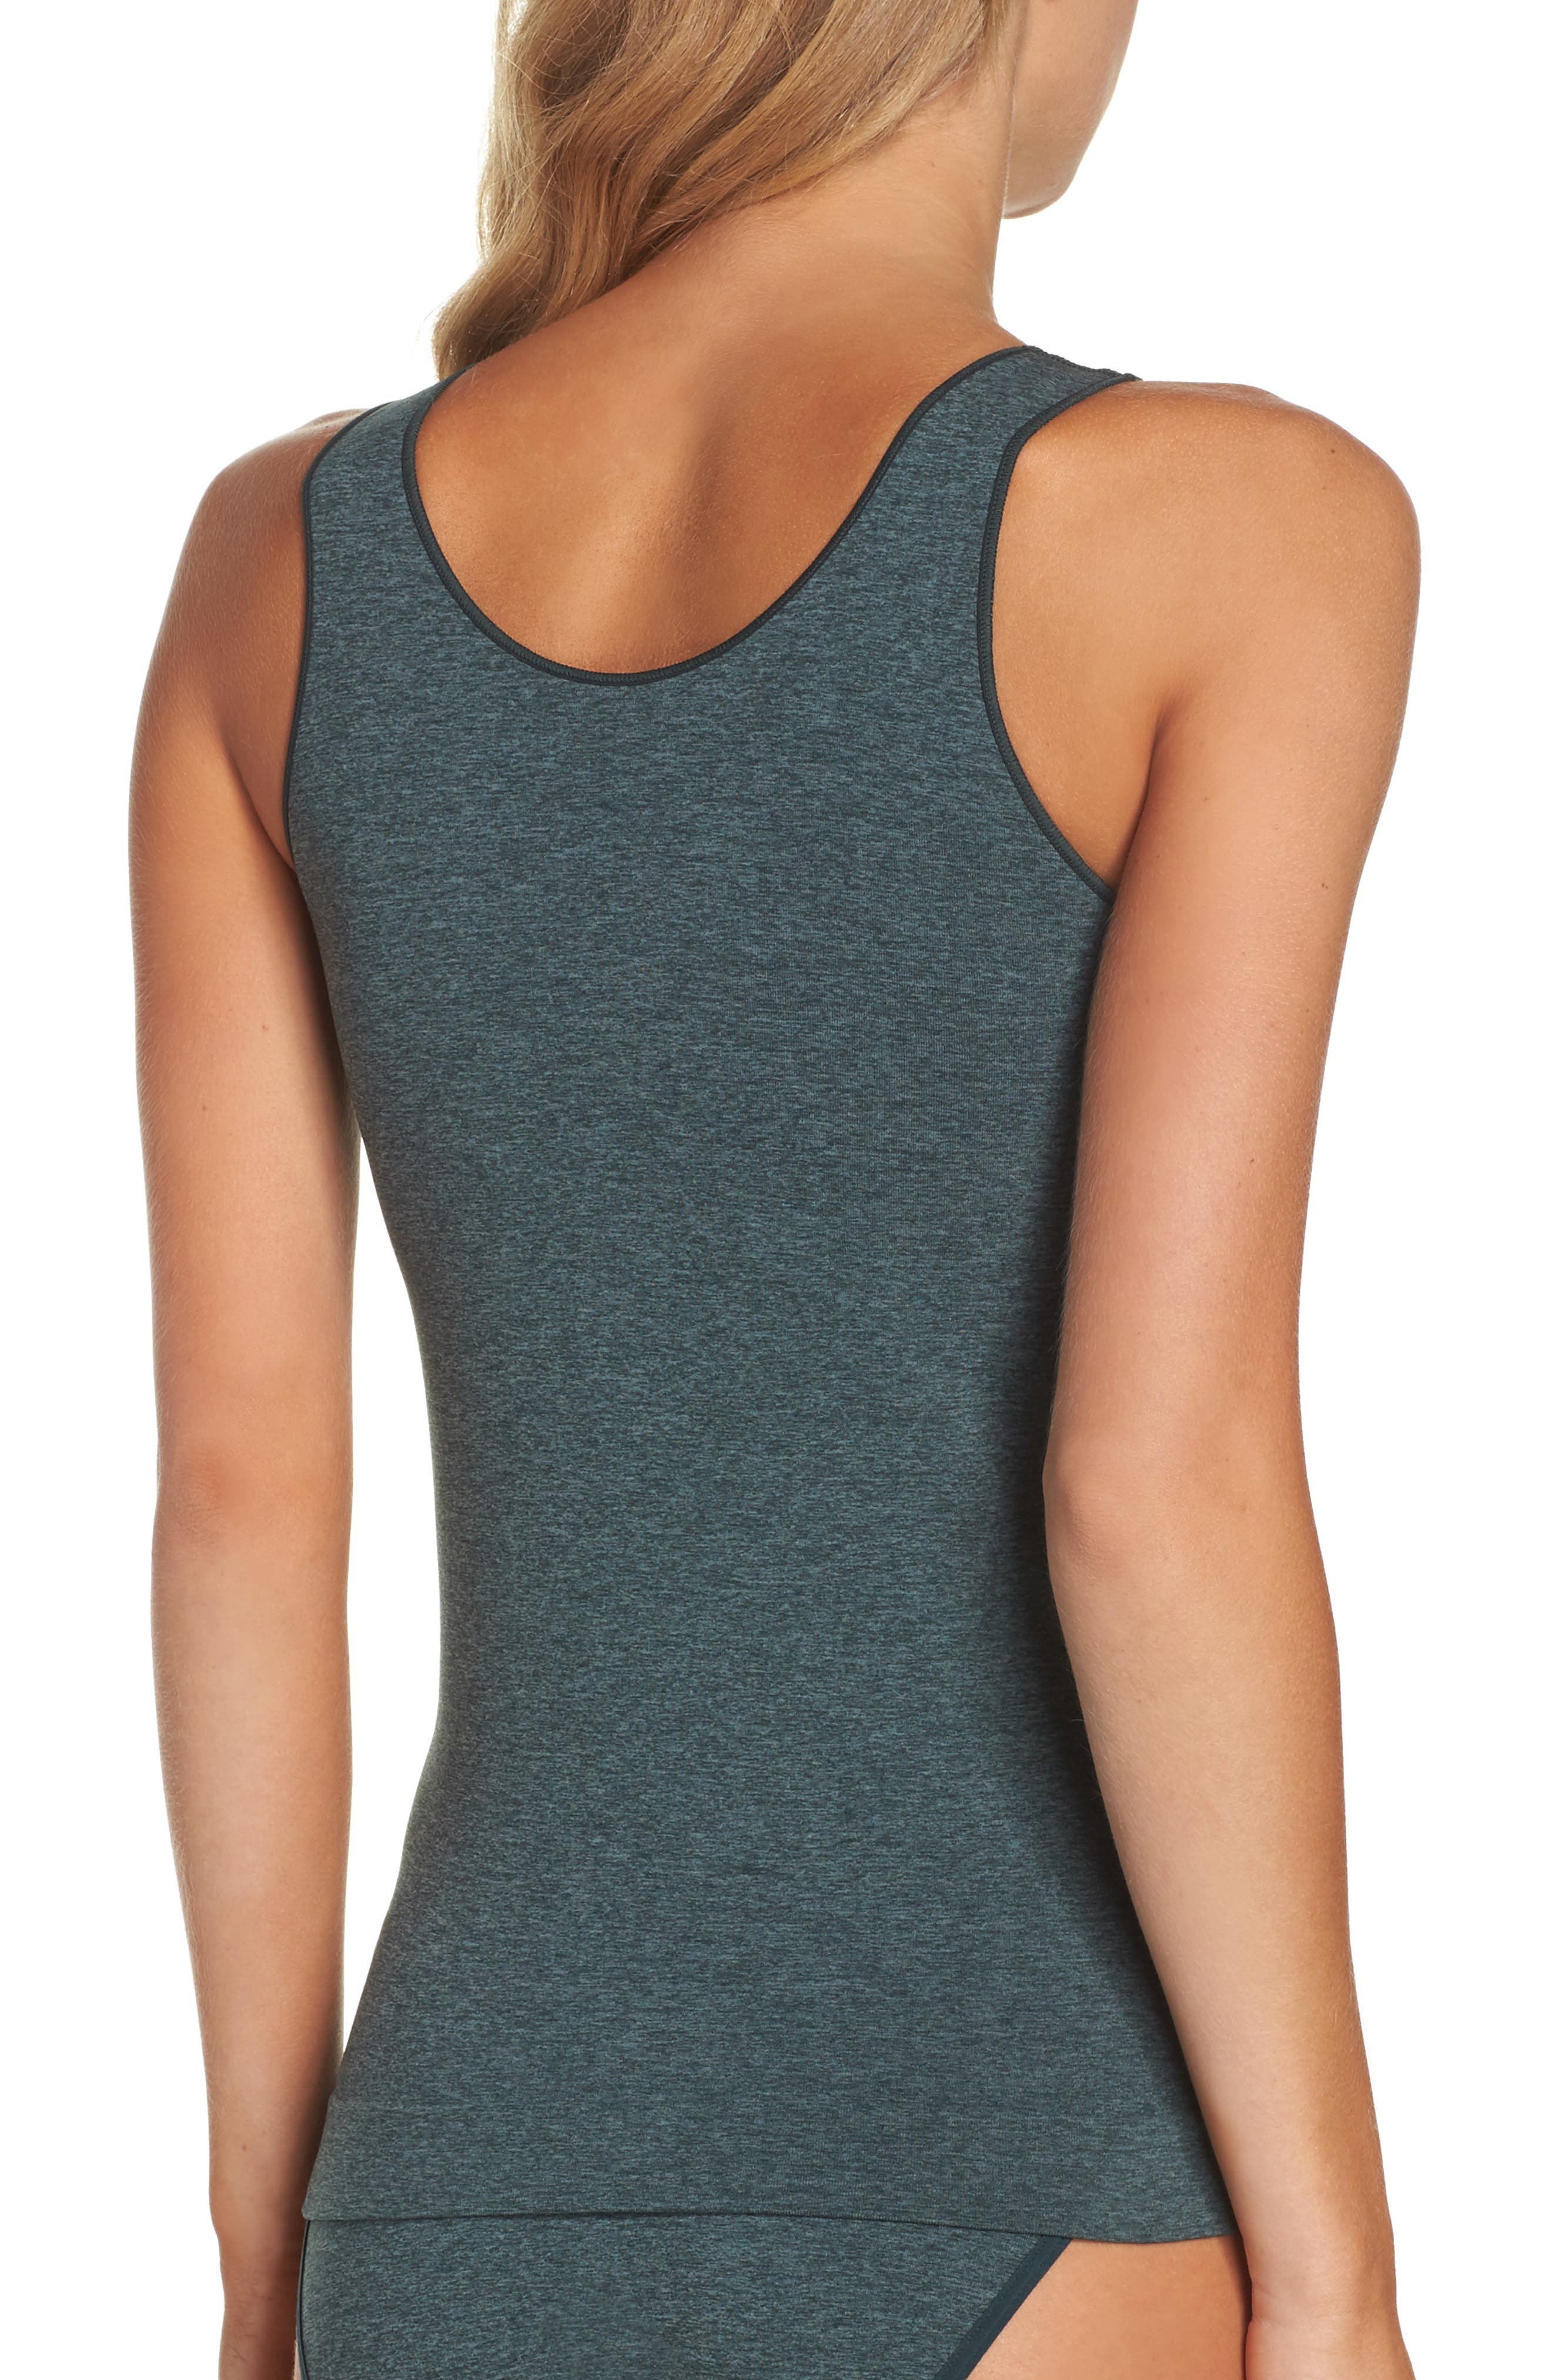 Alternate Image 2  - Nordstrom Lingerie Two-Way Seamless Tank